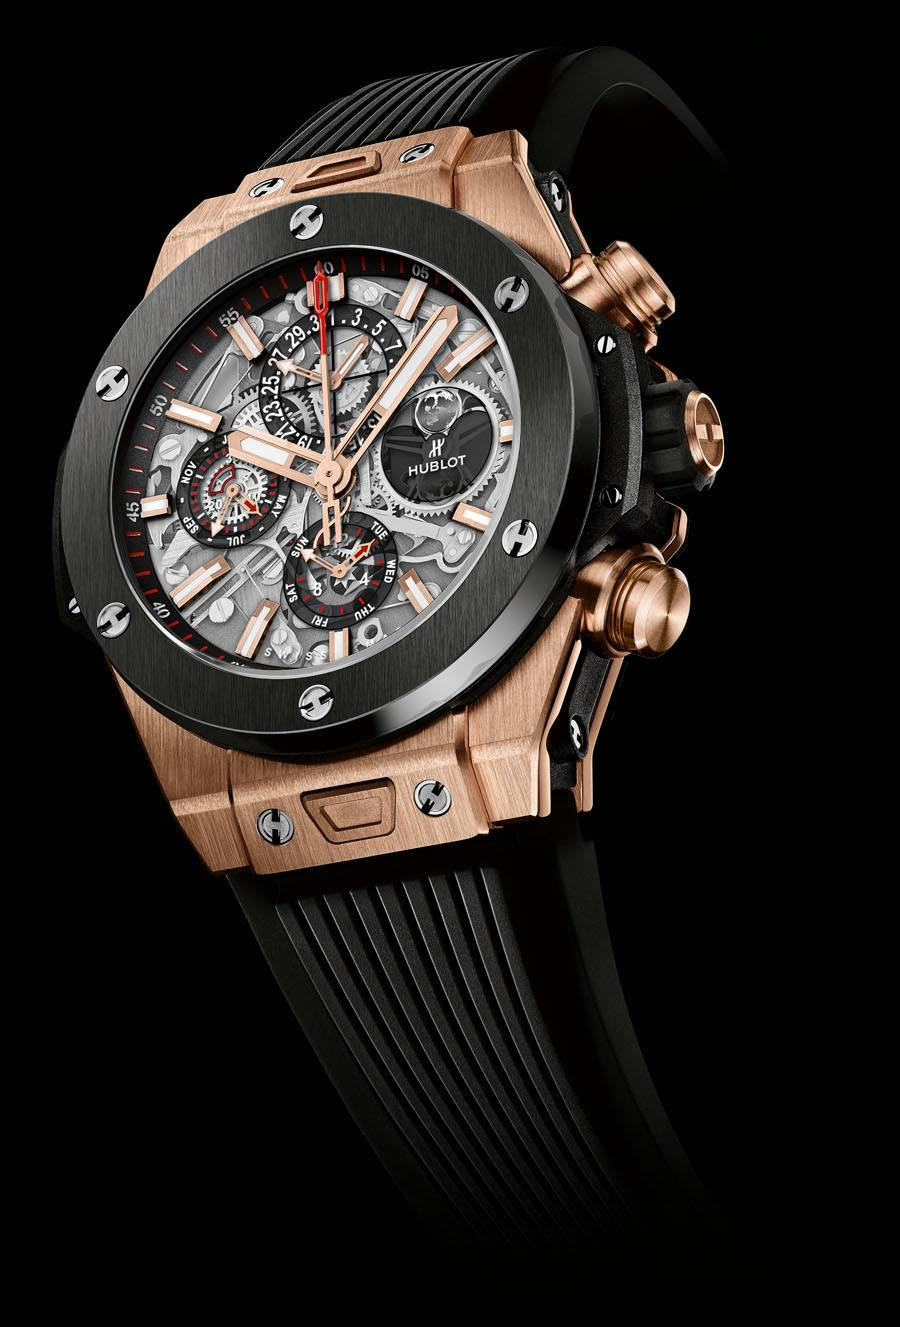 neue uhr hublot big bang perpetual calendar uhrforum. Black Bedroom Furniture Sets. Home Design Ideas